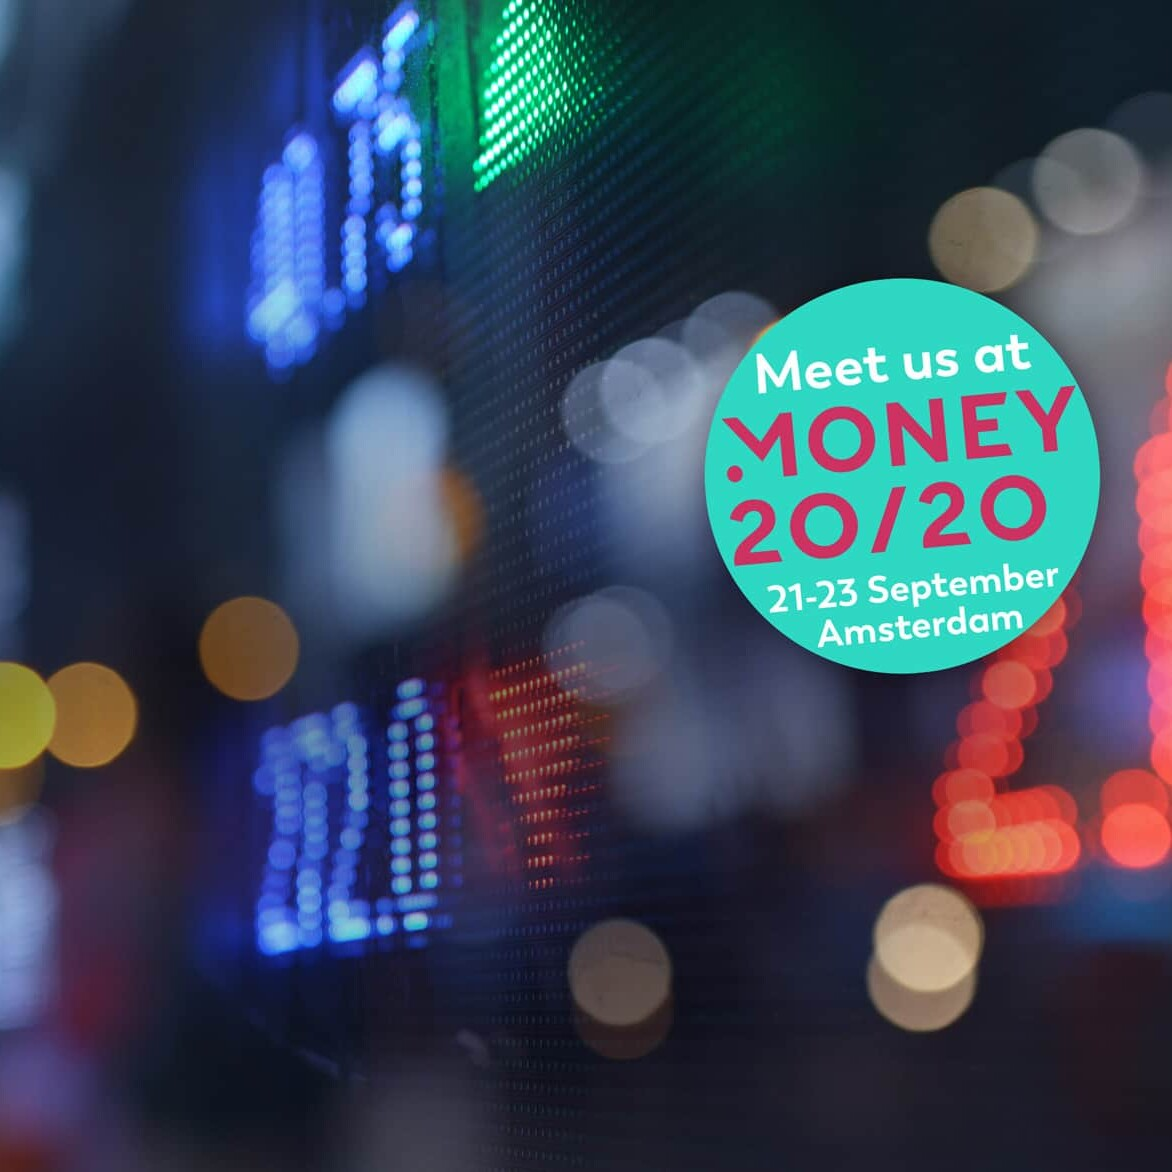 Meet Webhelp, your customer experience management partner at Money 2020 in Amsterdam for the financial services industry